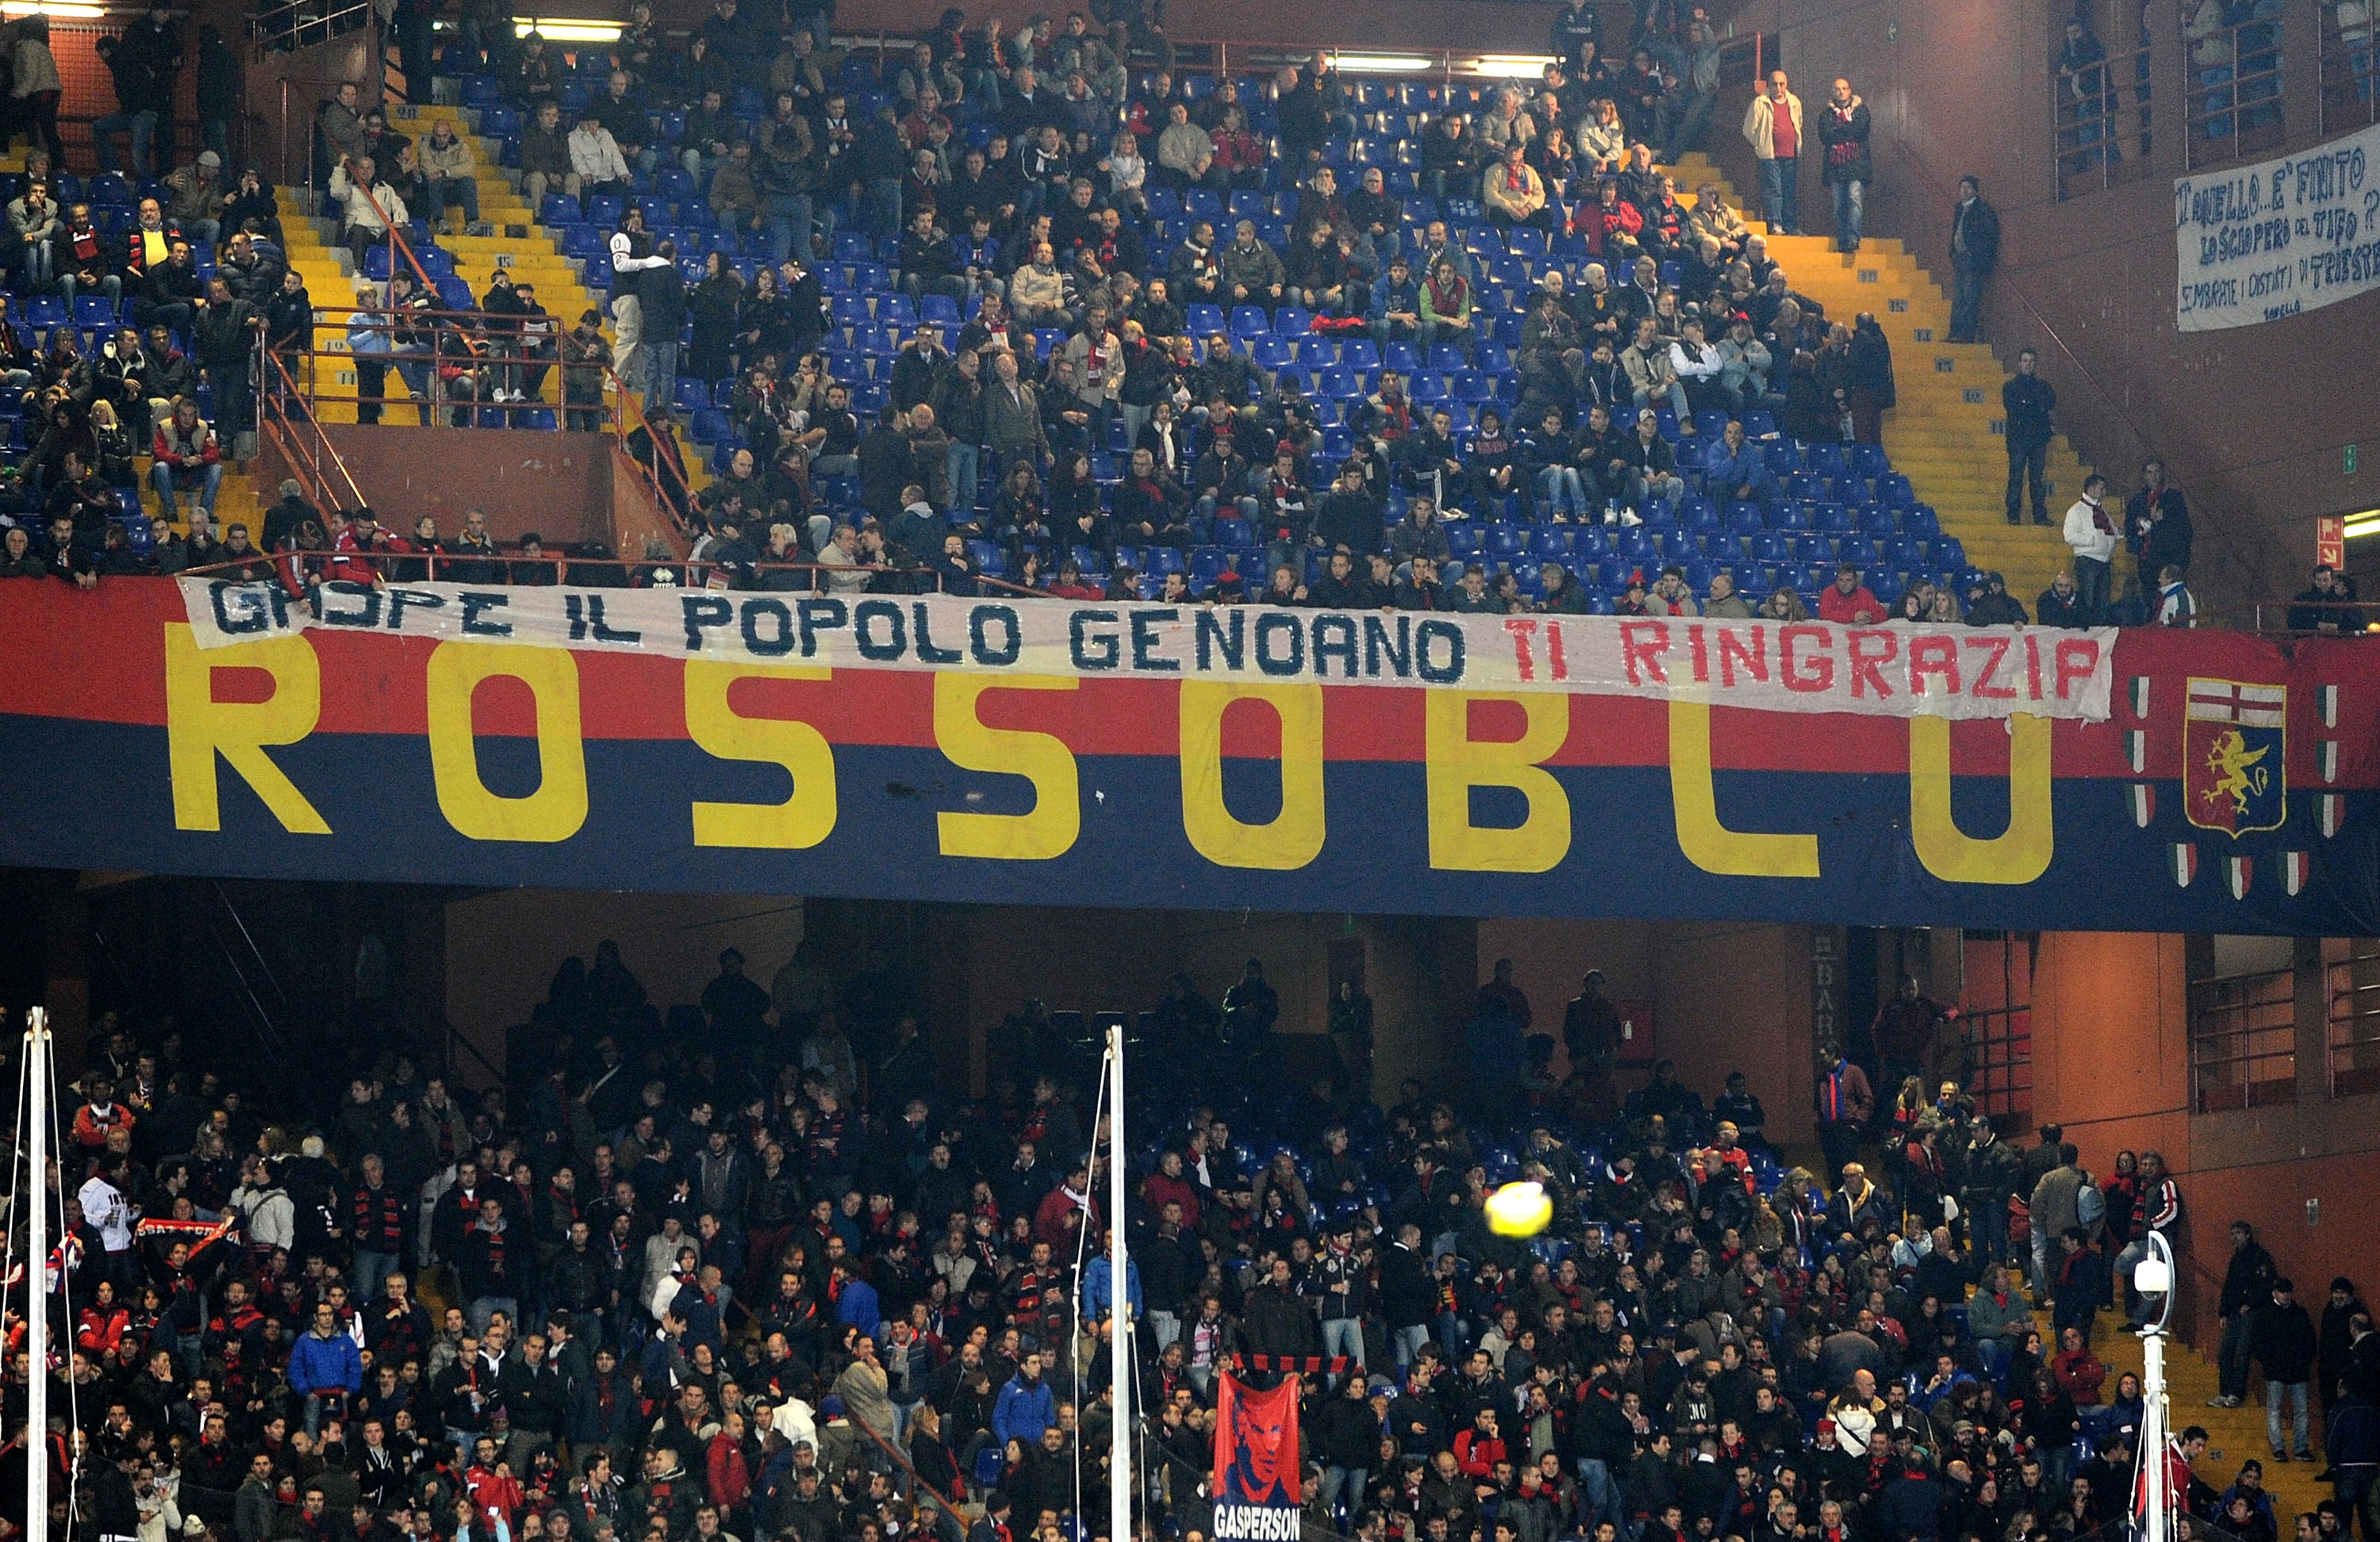 GENOA, ITALY - NOVEMBER 10: Fans of Genoa CFC  thank former head coach Giampiero Gasperini during the Serie A match between Genoa CFC and Bologna FC at Stadio Luigi Ferraris on November 10, 2010 in Genoa, Italy.  (Photo by Massimo Cebrelli/Getty Images)